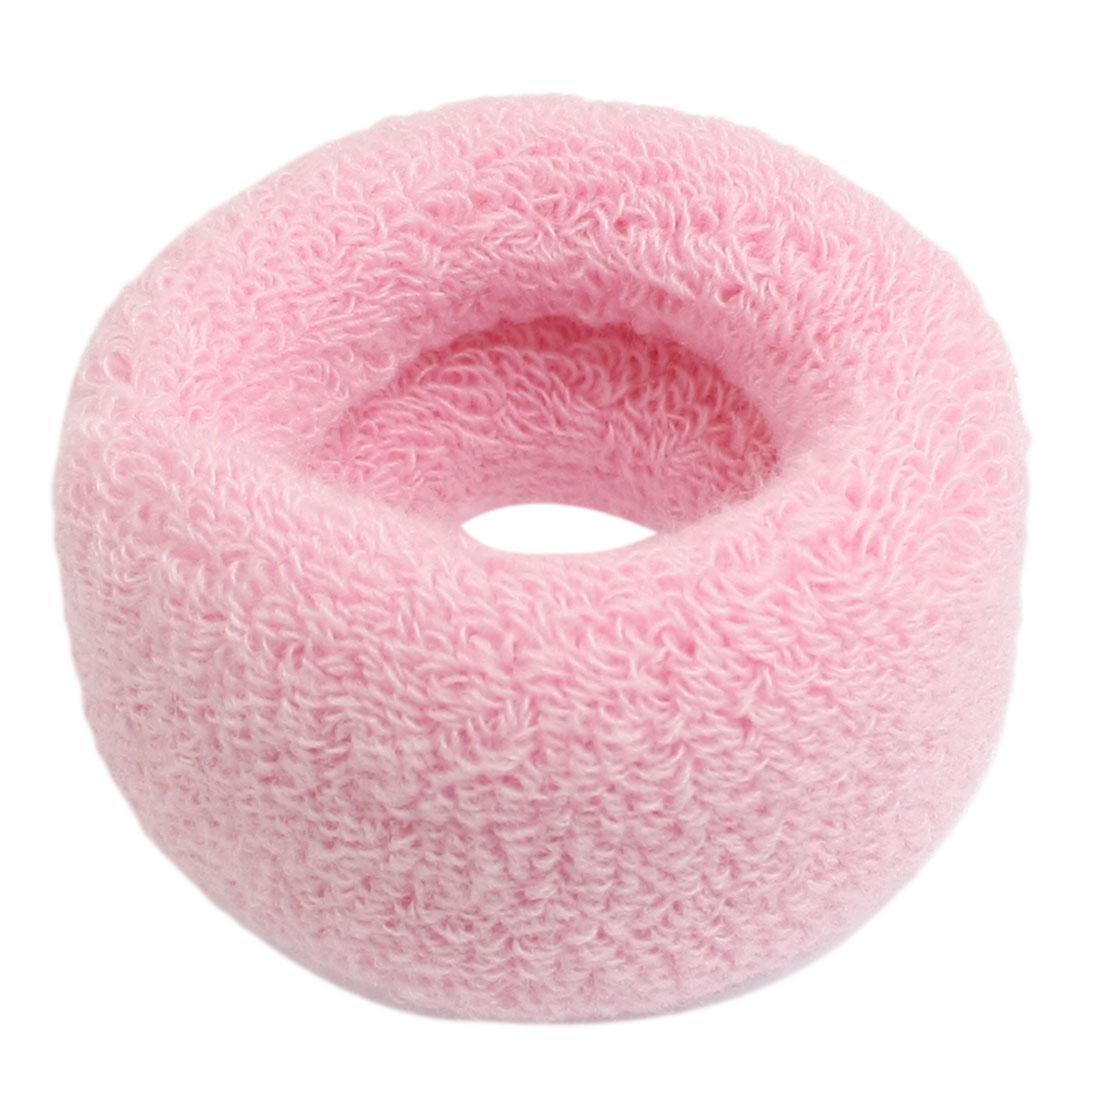 Elastic Rubber Hair Tie Band Ponytail Braid Holder Super-Wide Pink